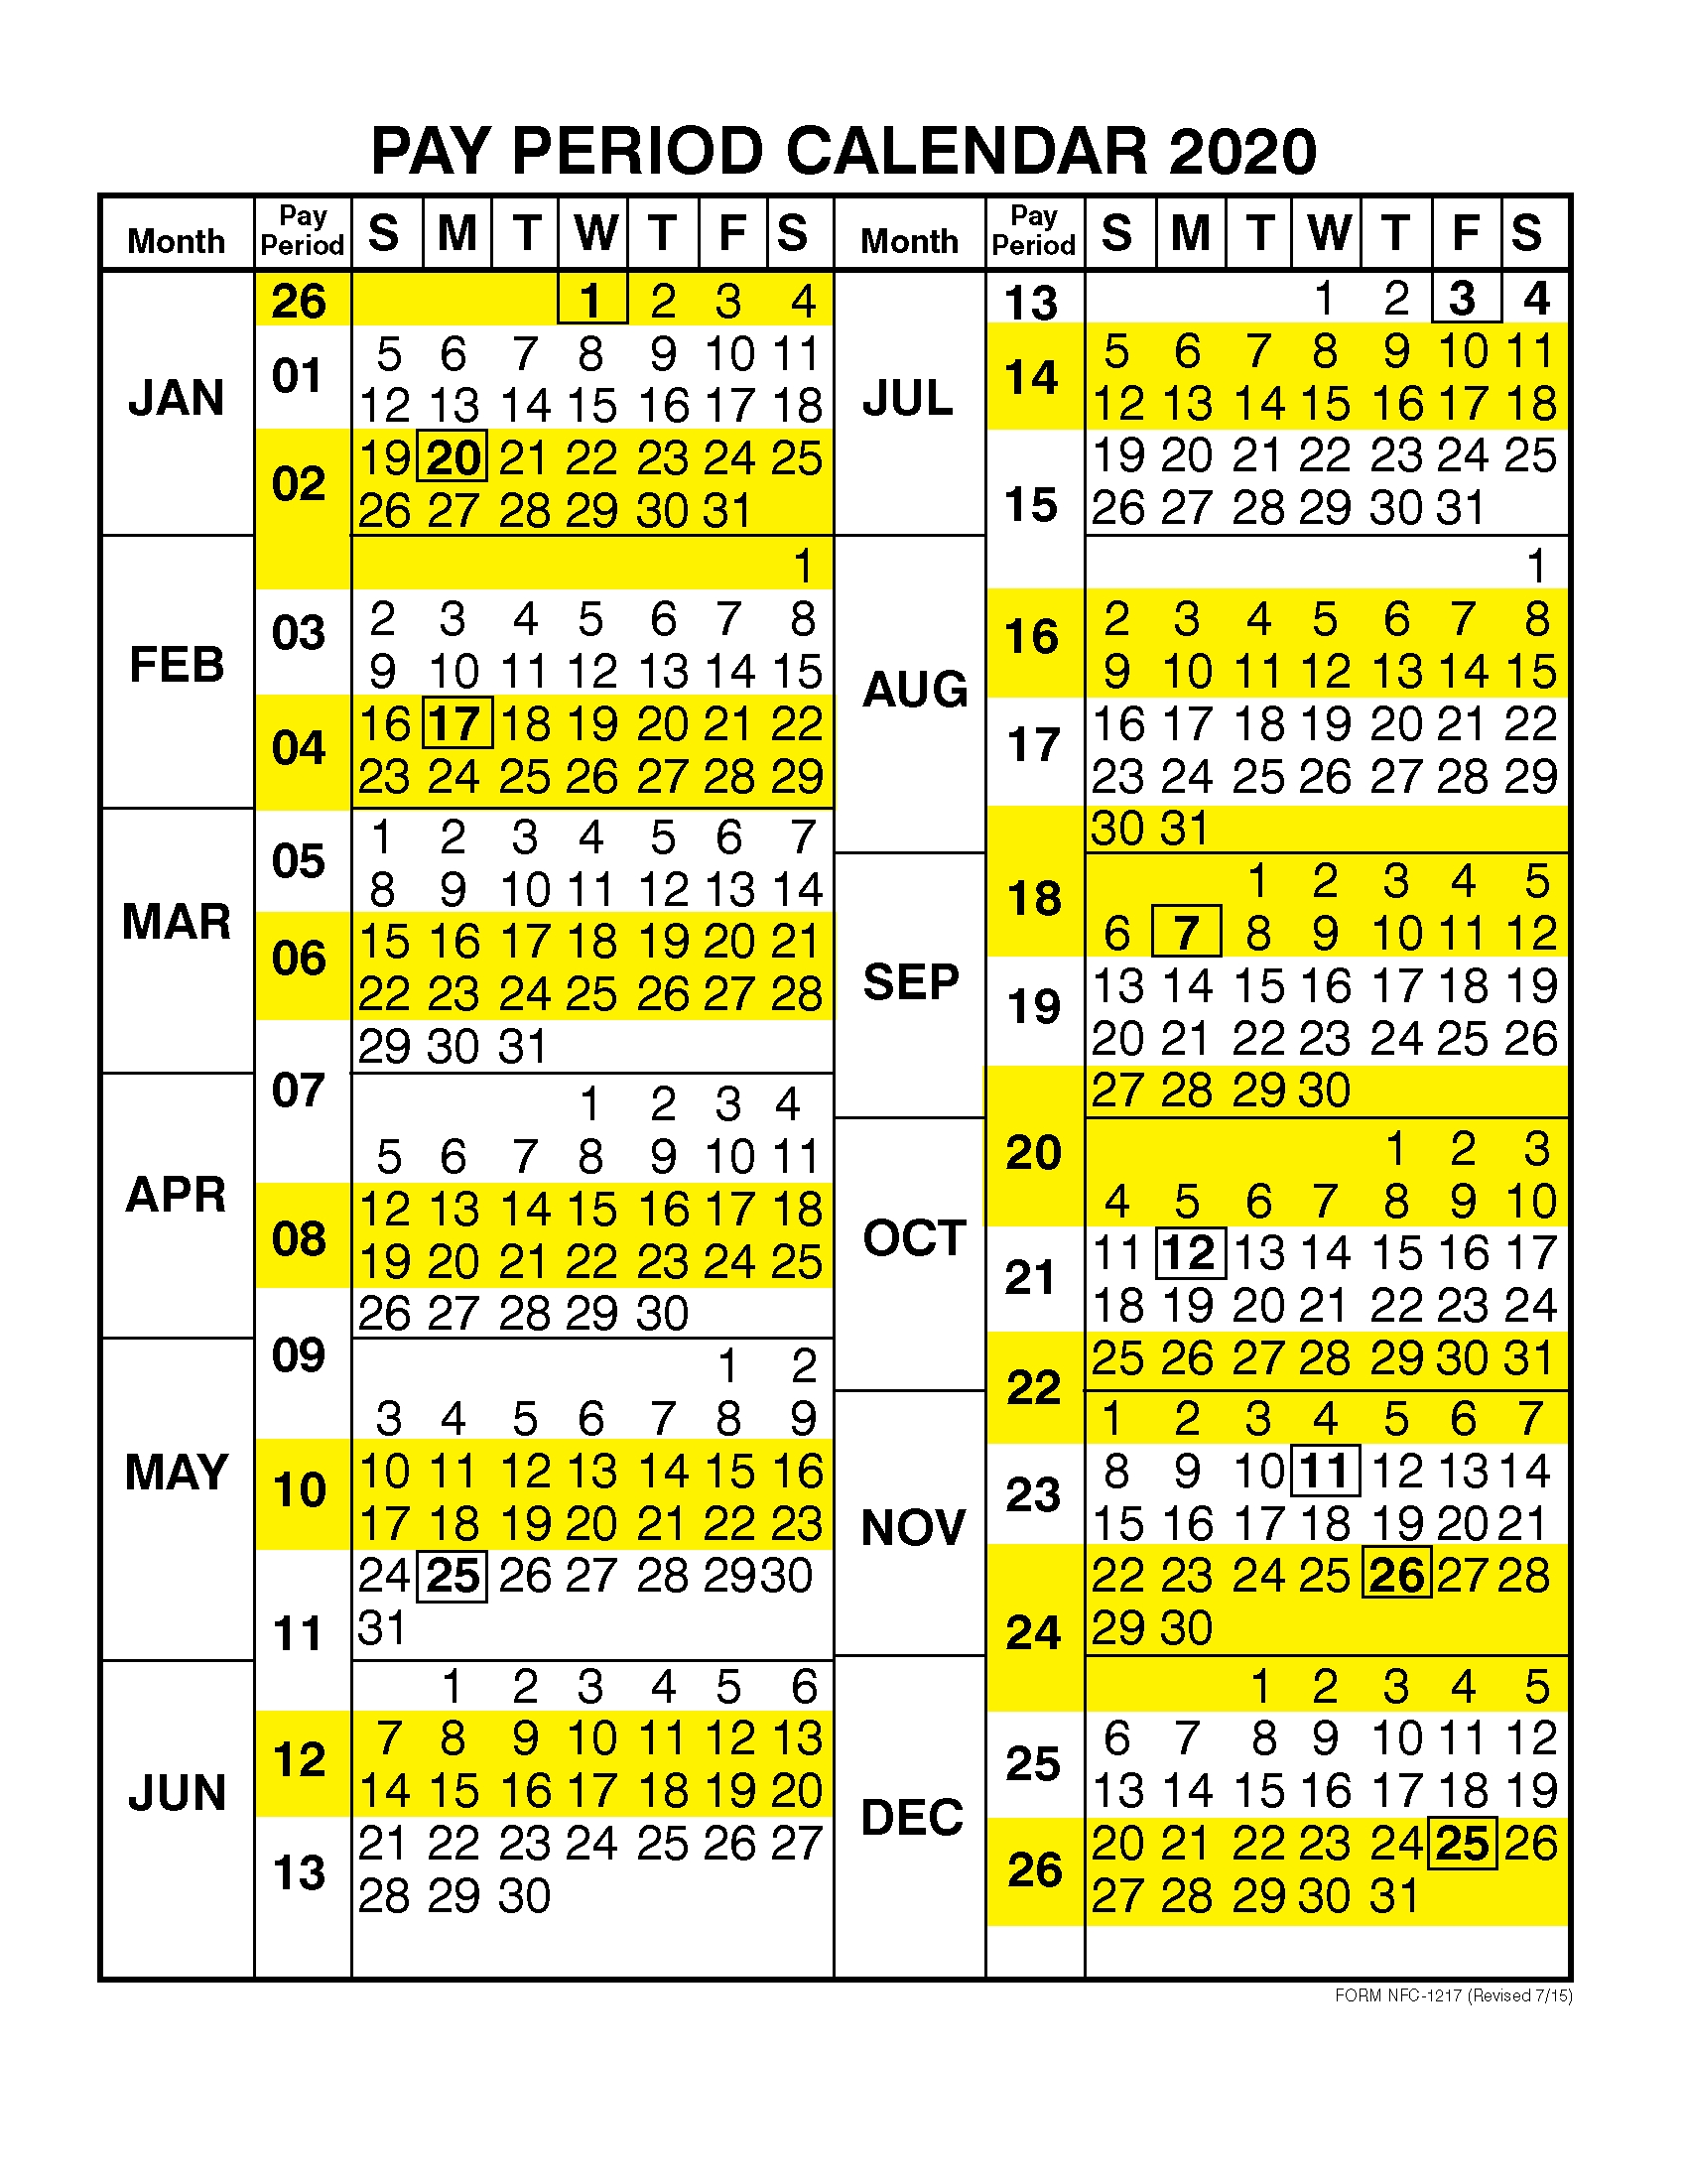 Catch 2021 Calendar With Pay Periods